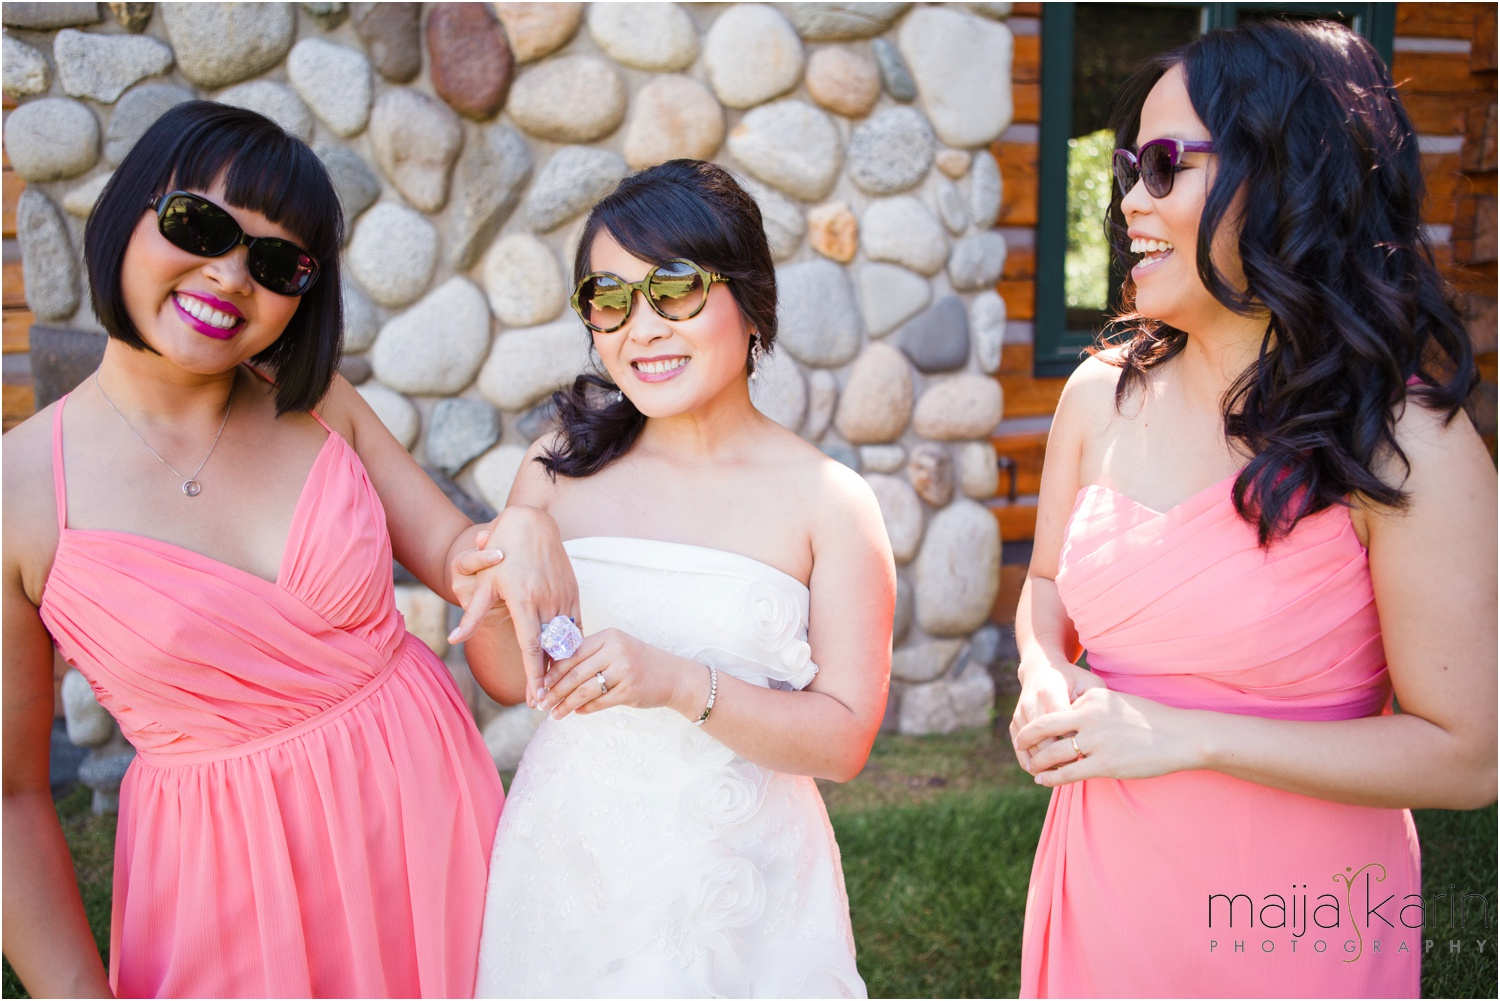 Mountain-Springs-Lodge-Leavenworth-Washington-Wedding-Photographer-Majiin-Karin-Photography_26.jpg